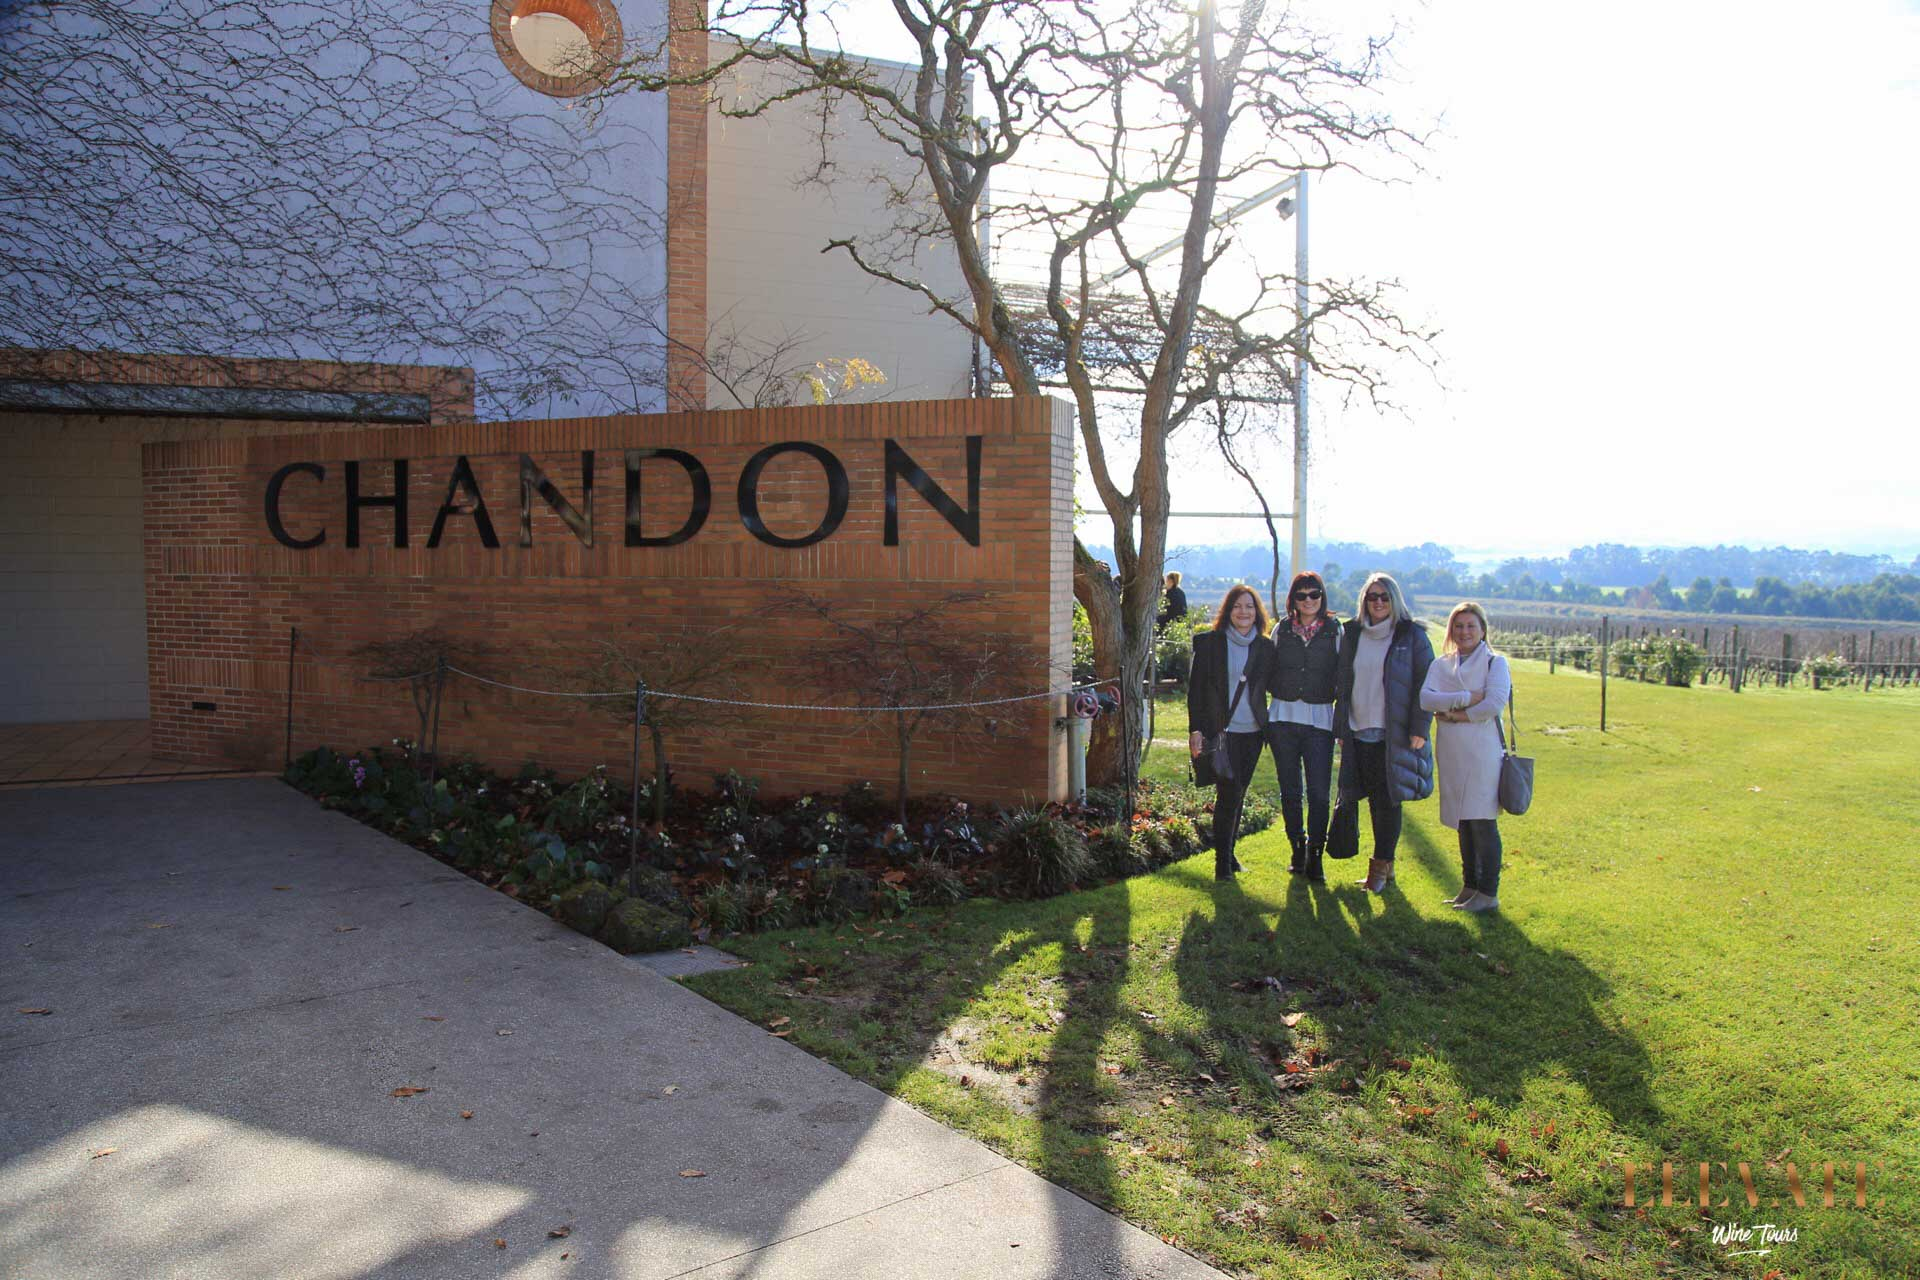 CHANDON-YARRA-VALLEY-WINE-TOUR